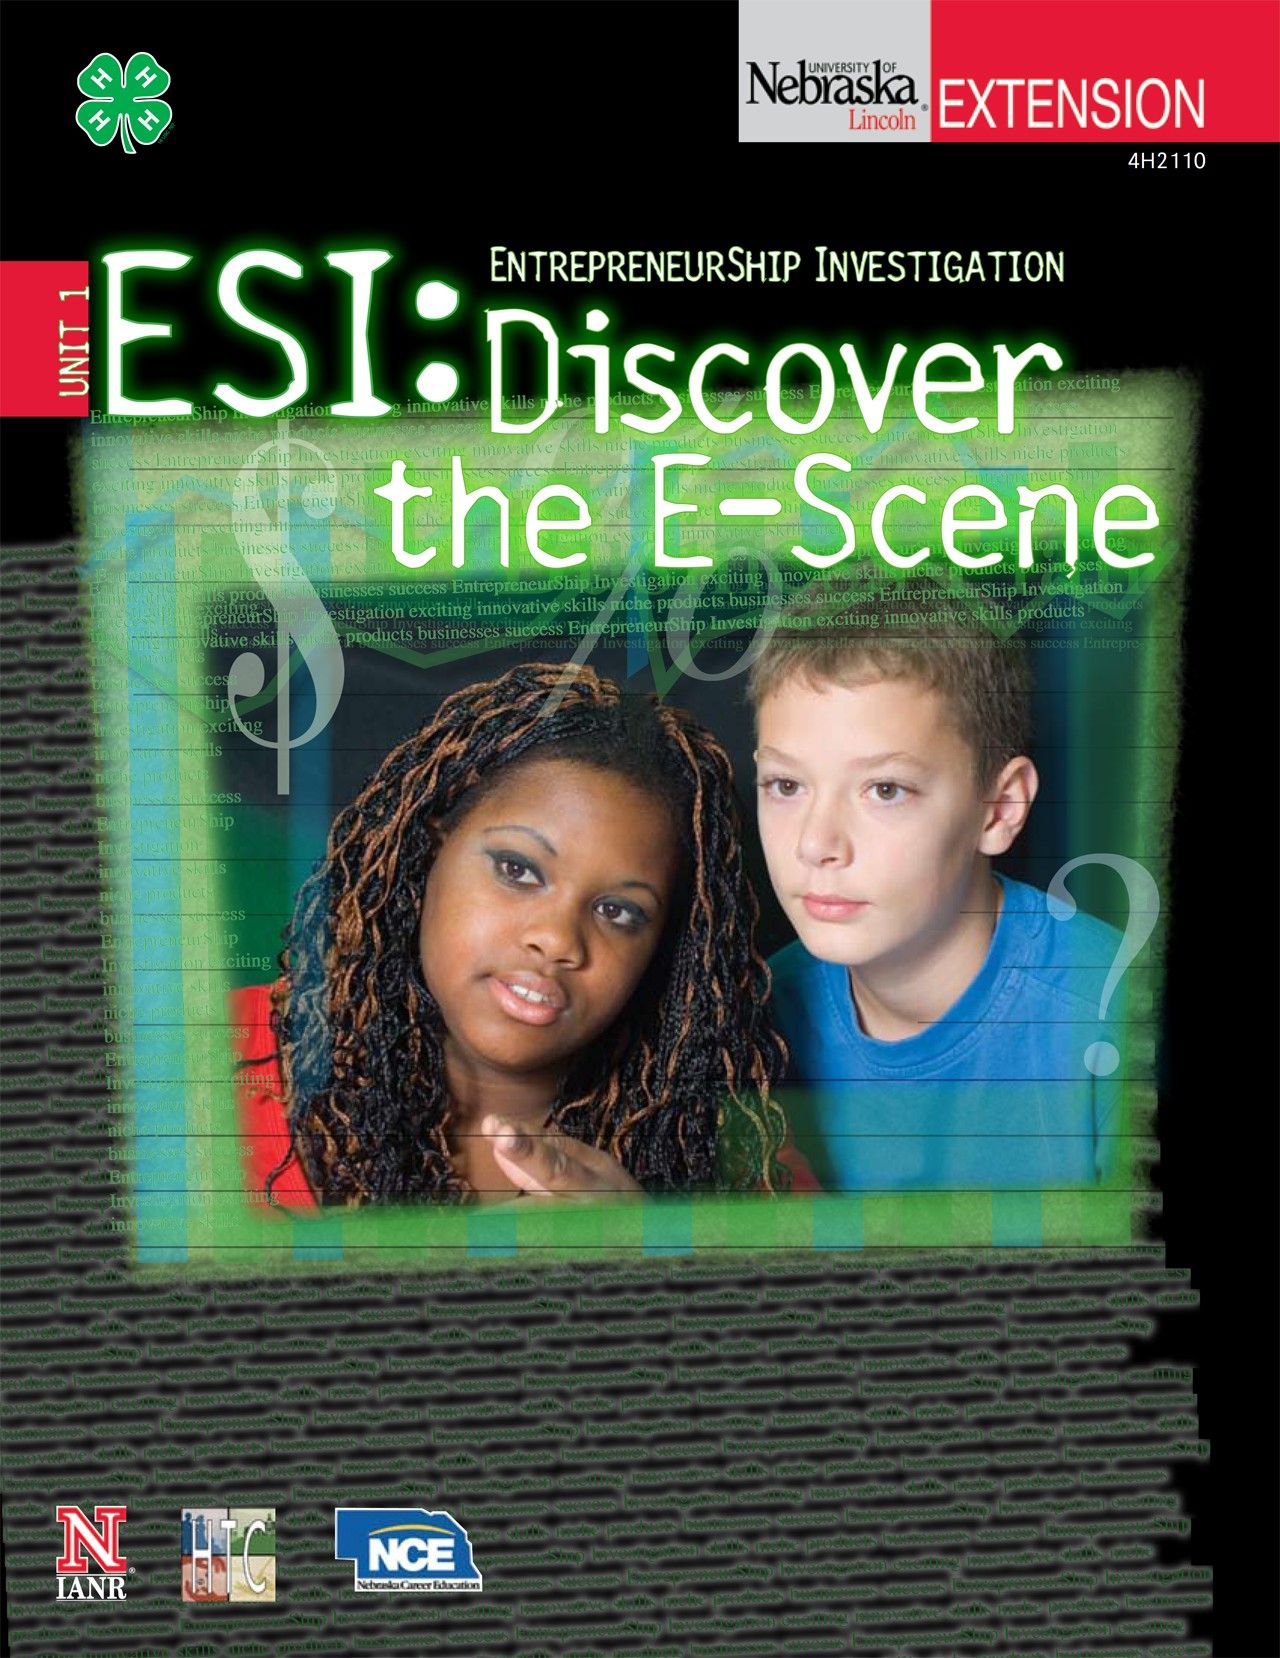 EntrepreneurShip Investigation 1: Discover the E-Scene